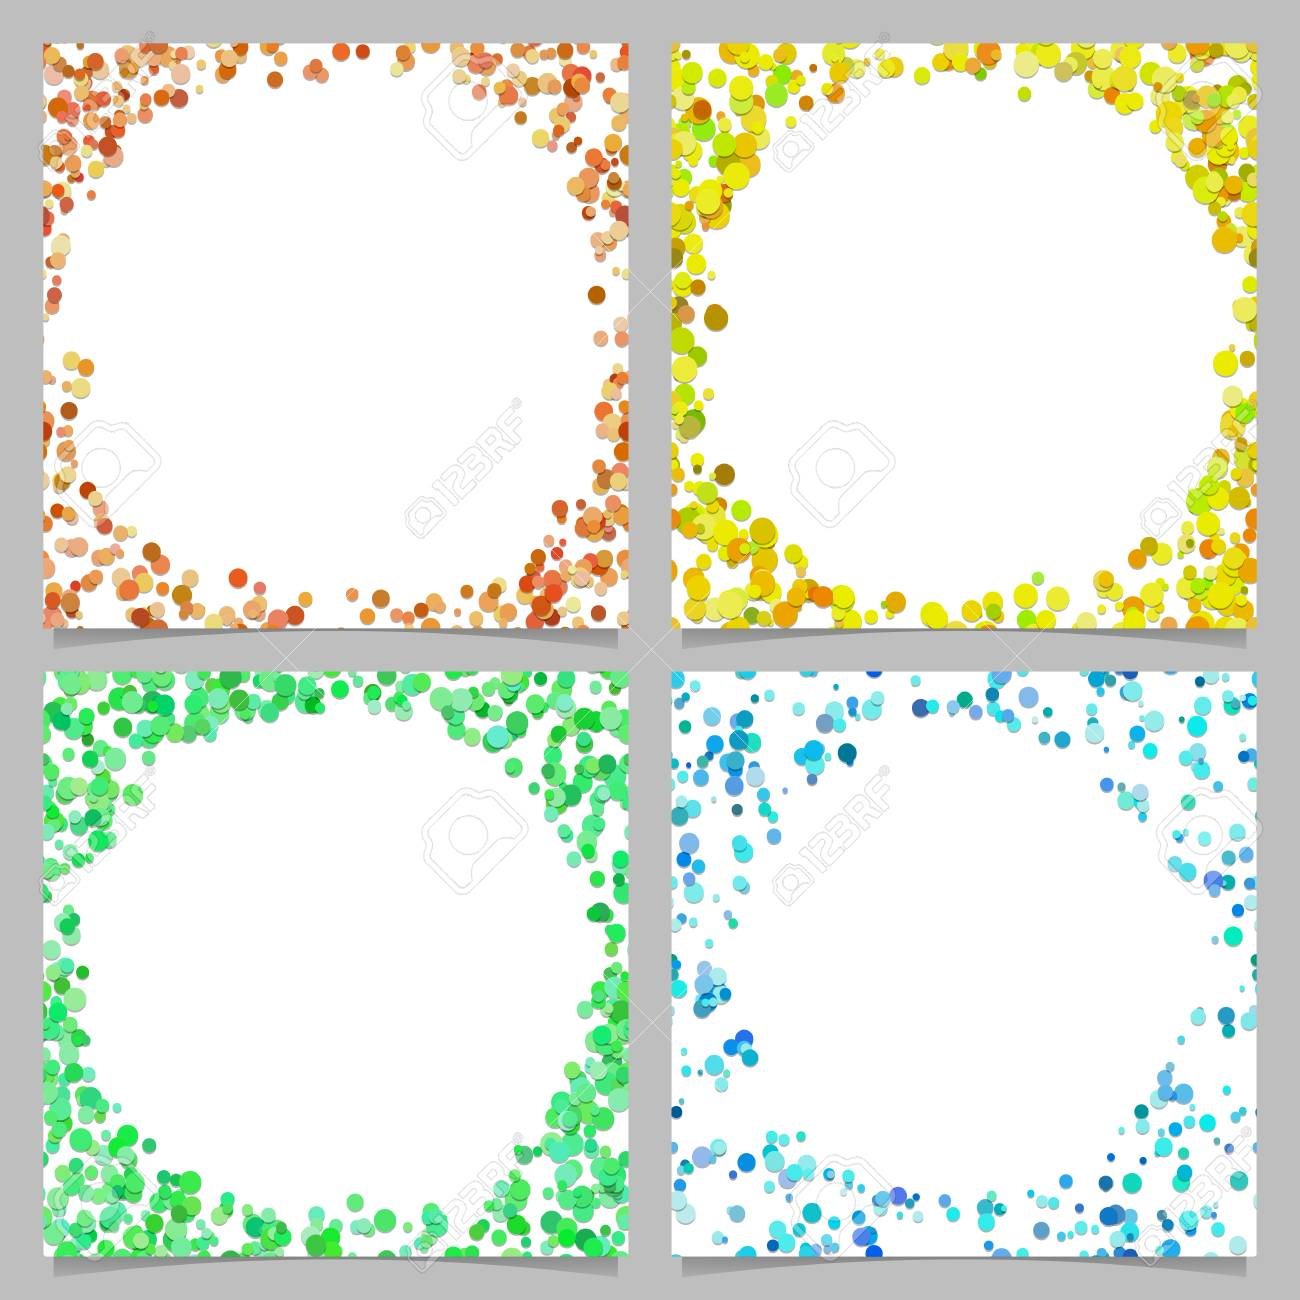 Colored Abstract Round Border Background Design Set With Dots 1300x1300